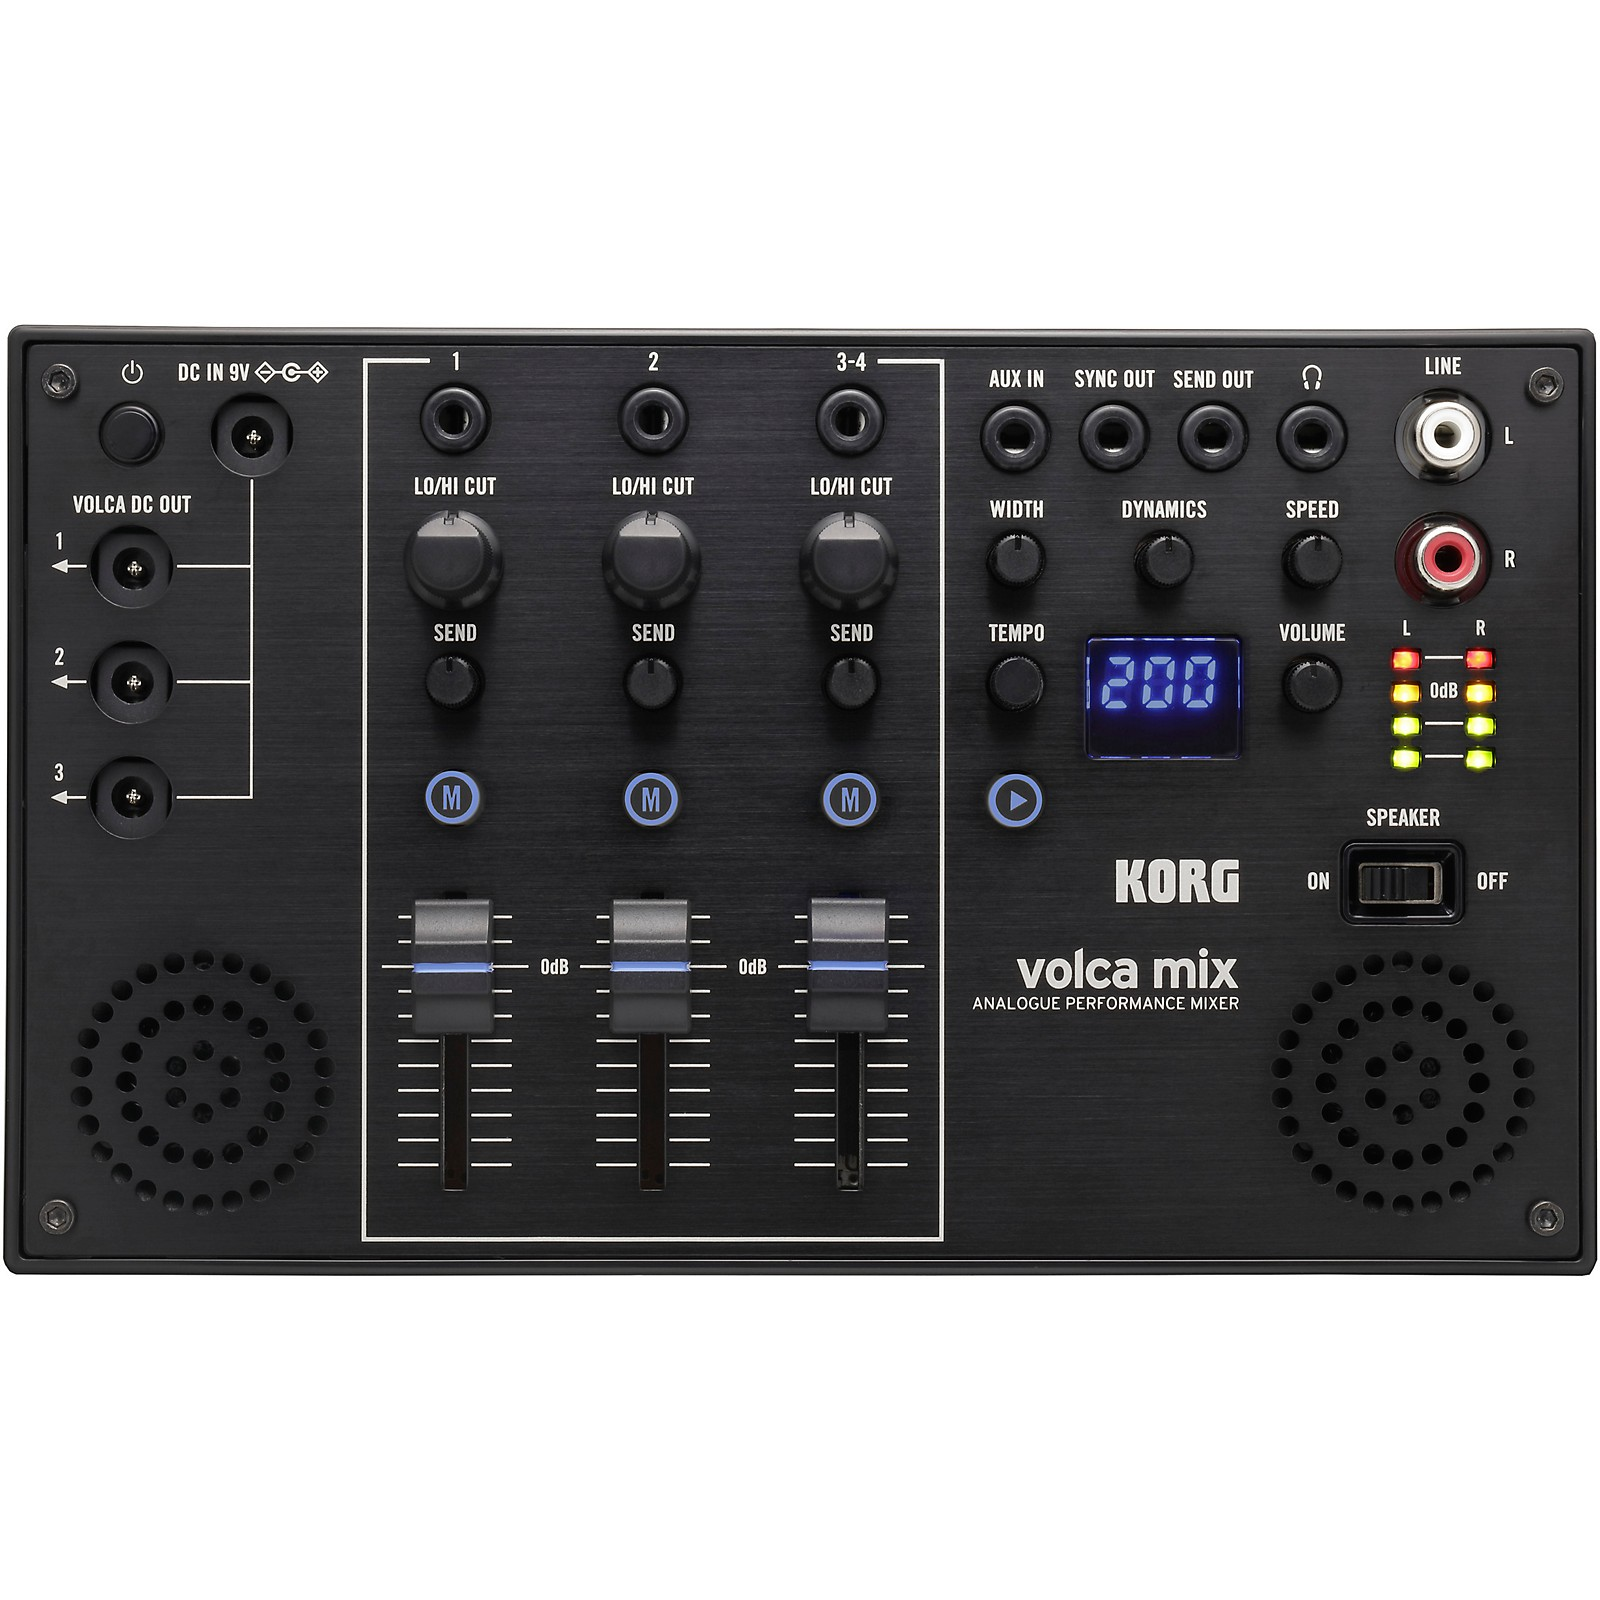 Korg Volca Mix Analog Performance Mixer